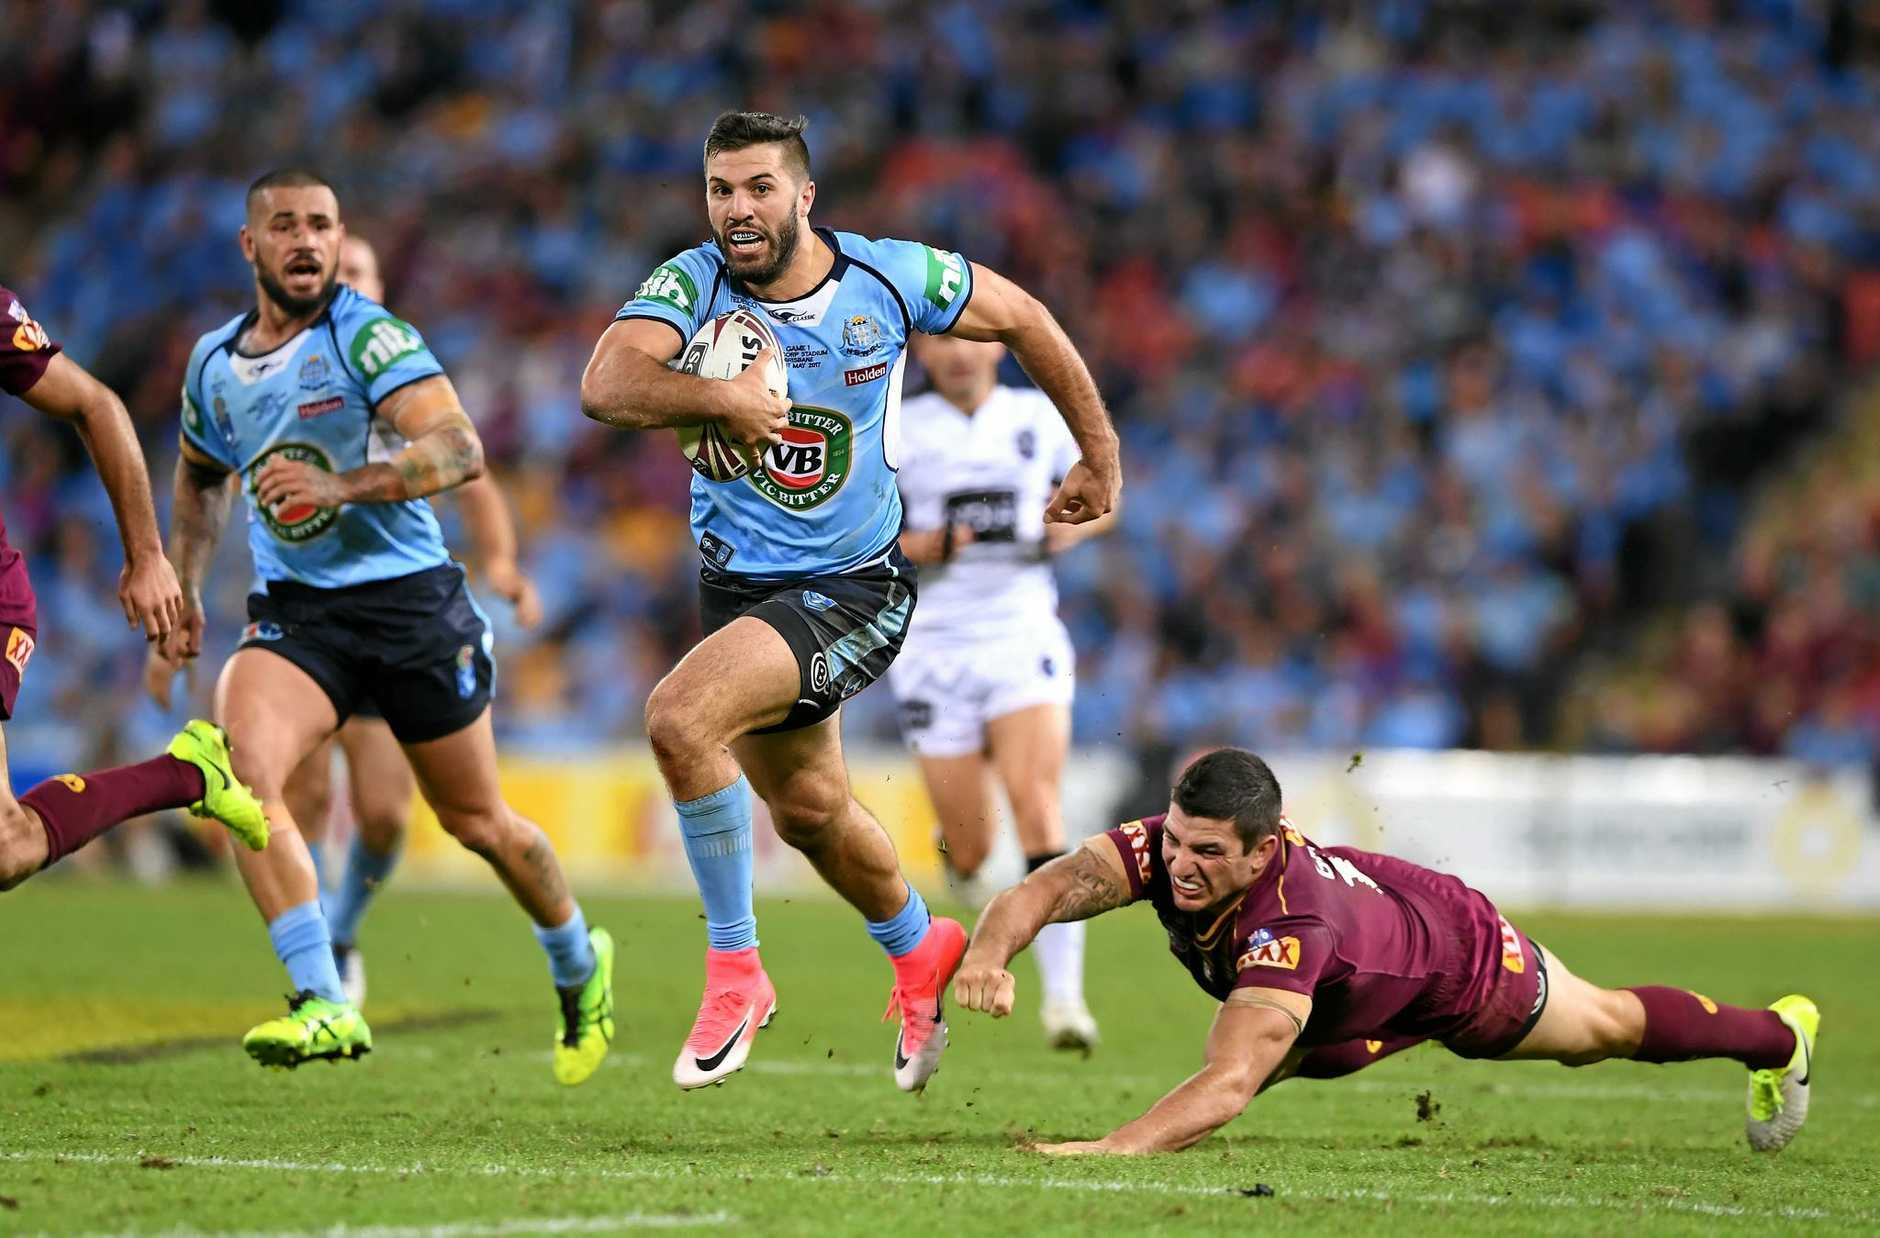 James Tedesco of the NSW Blues gets clear before putting Mitchell Pearce in for a try during Game 1 of the State of Origin series at Suncorp Stadium in Brisbane, Wednesday,  May 31, 2017. (AAP Image/Dave Hunt) NO ARCHIVING